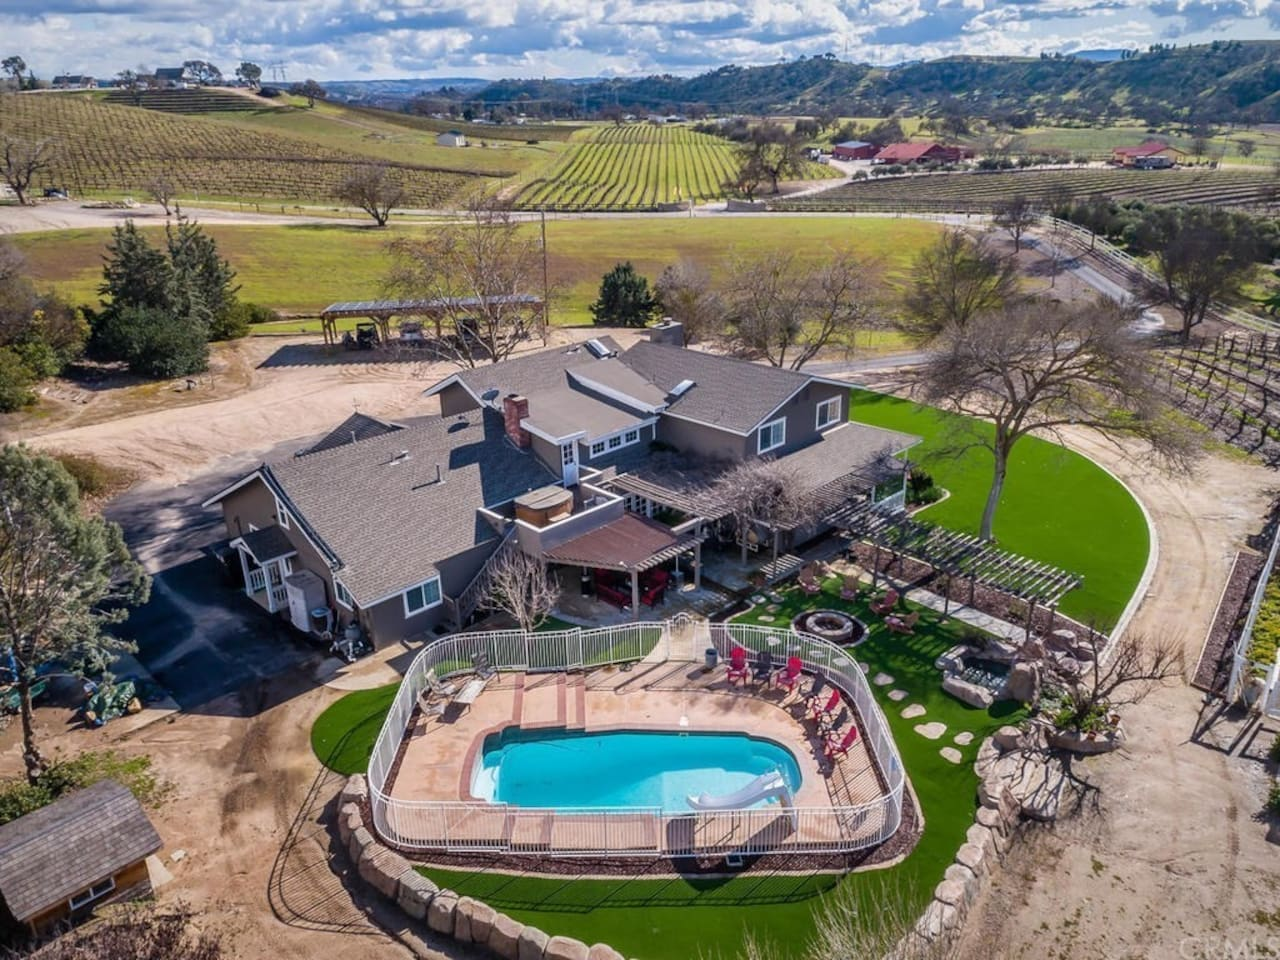 Luxury Vineyard Estate With Pool, Hot Tub, Fire pit, & Views